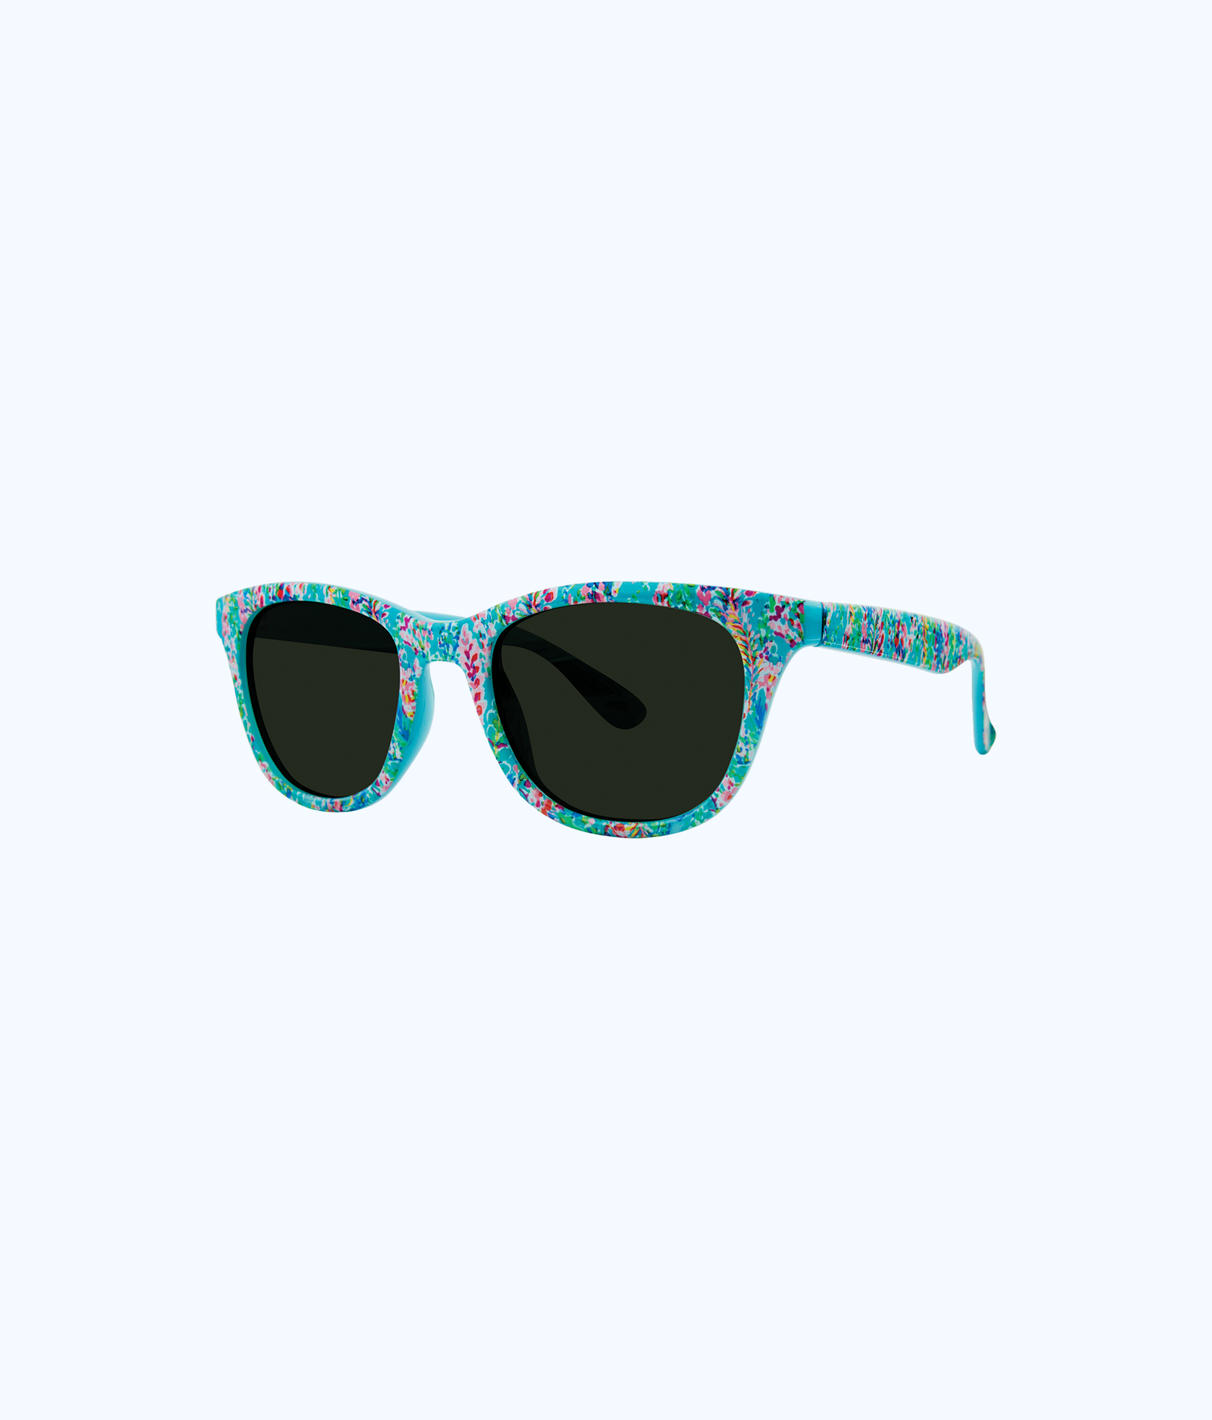 Lilly Pulitzer Lilly Pulitzer Maddie Sunglasses